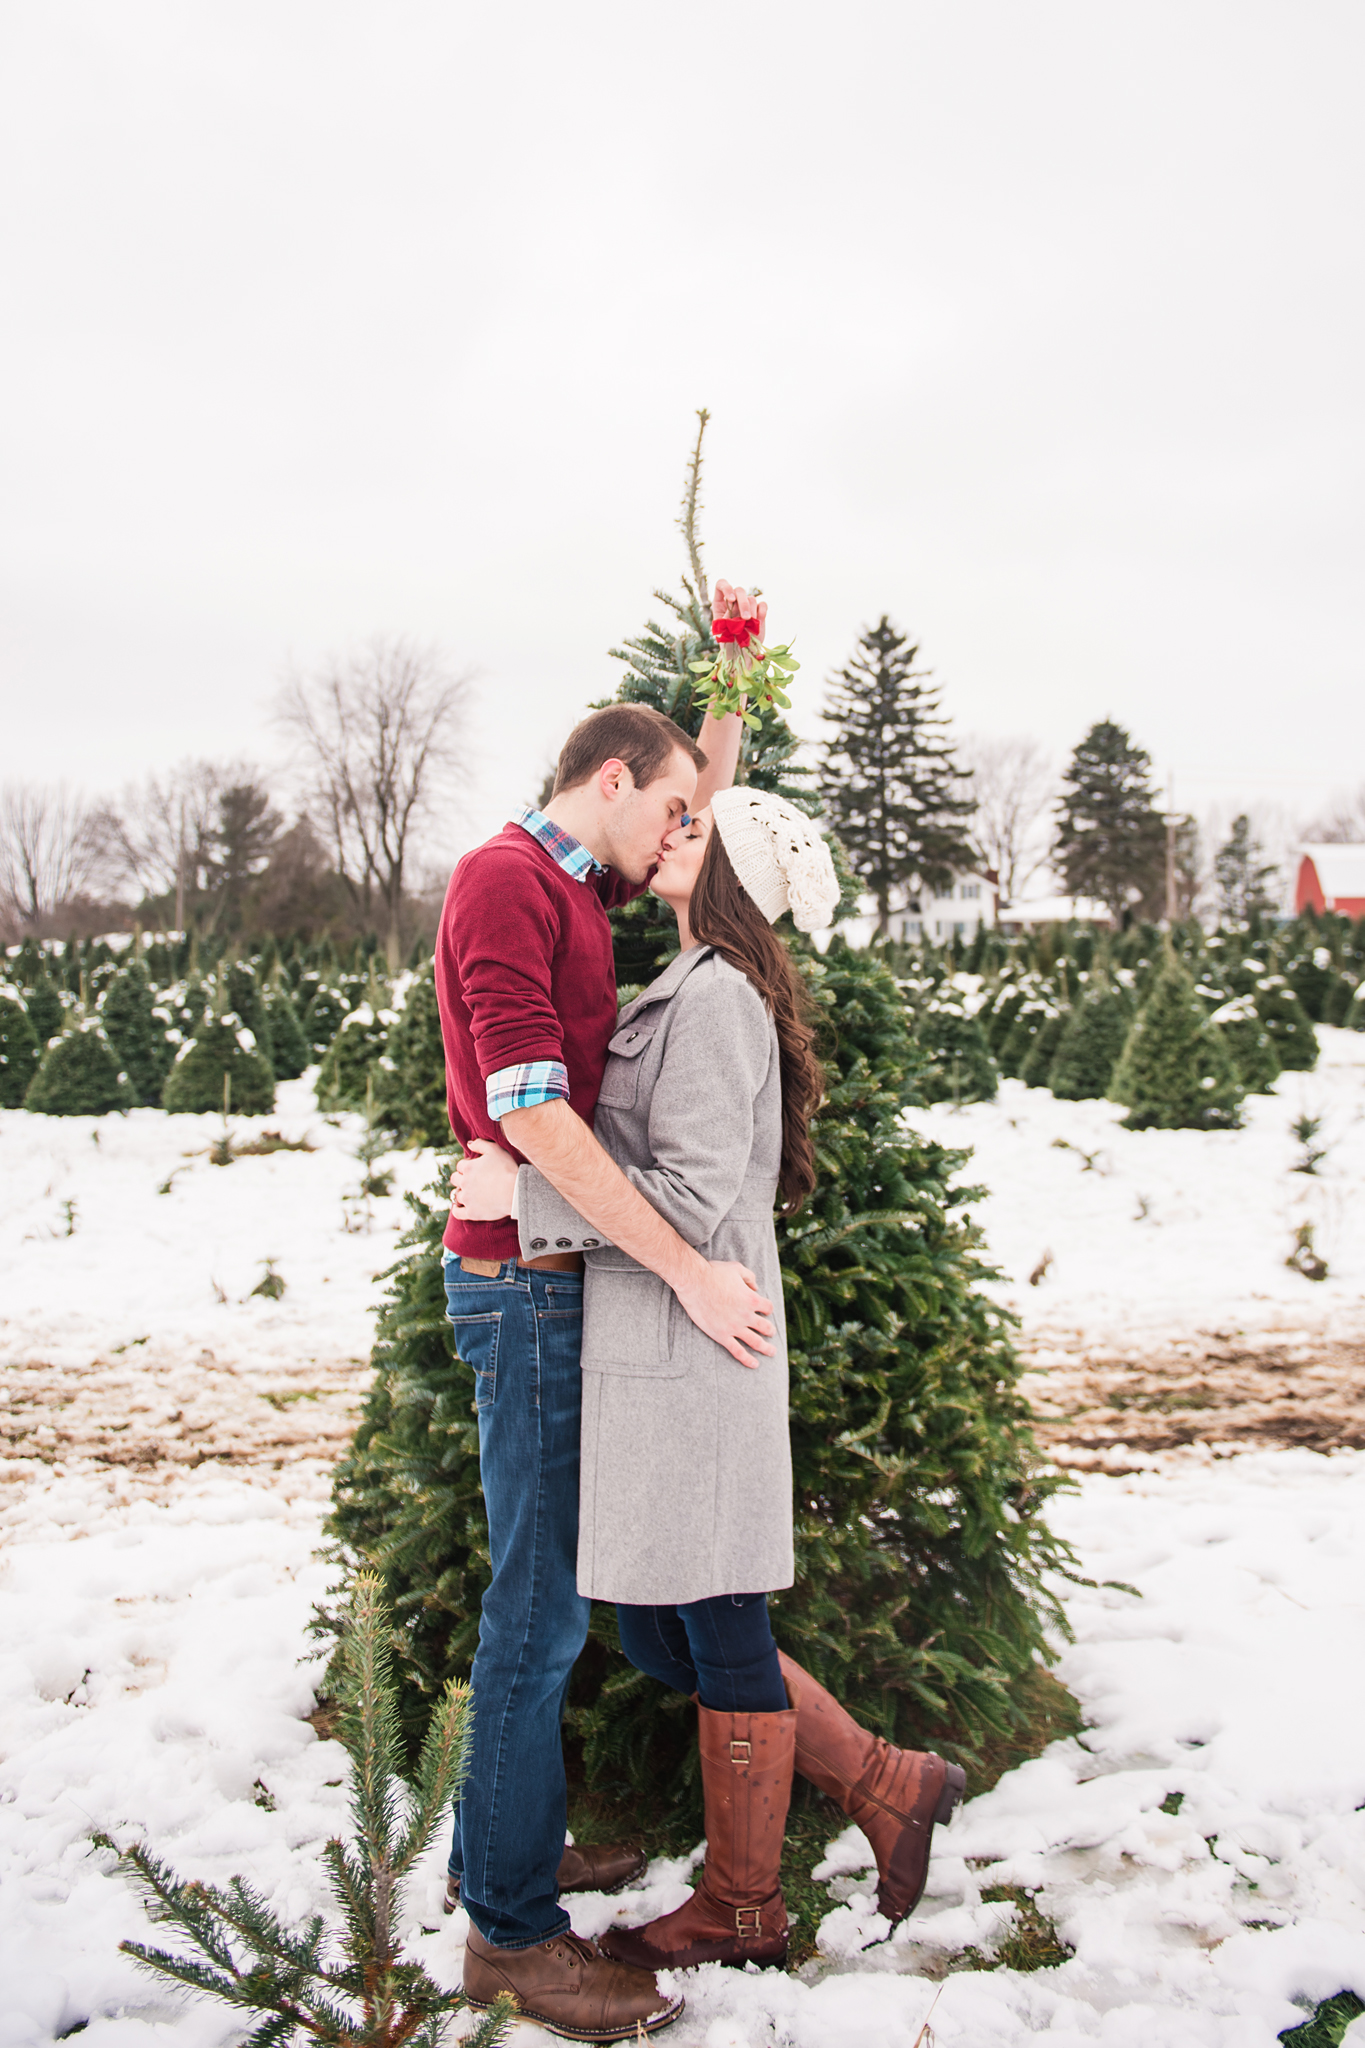 Woody_Acres_Rochester_Engagement_Session_JILL_STUDIO_Rochester_NY_Photographer_153804.jpg